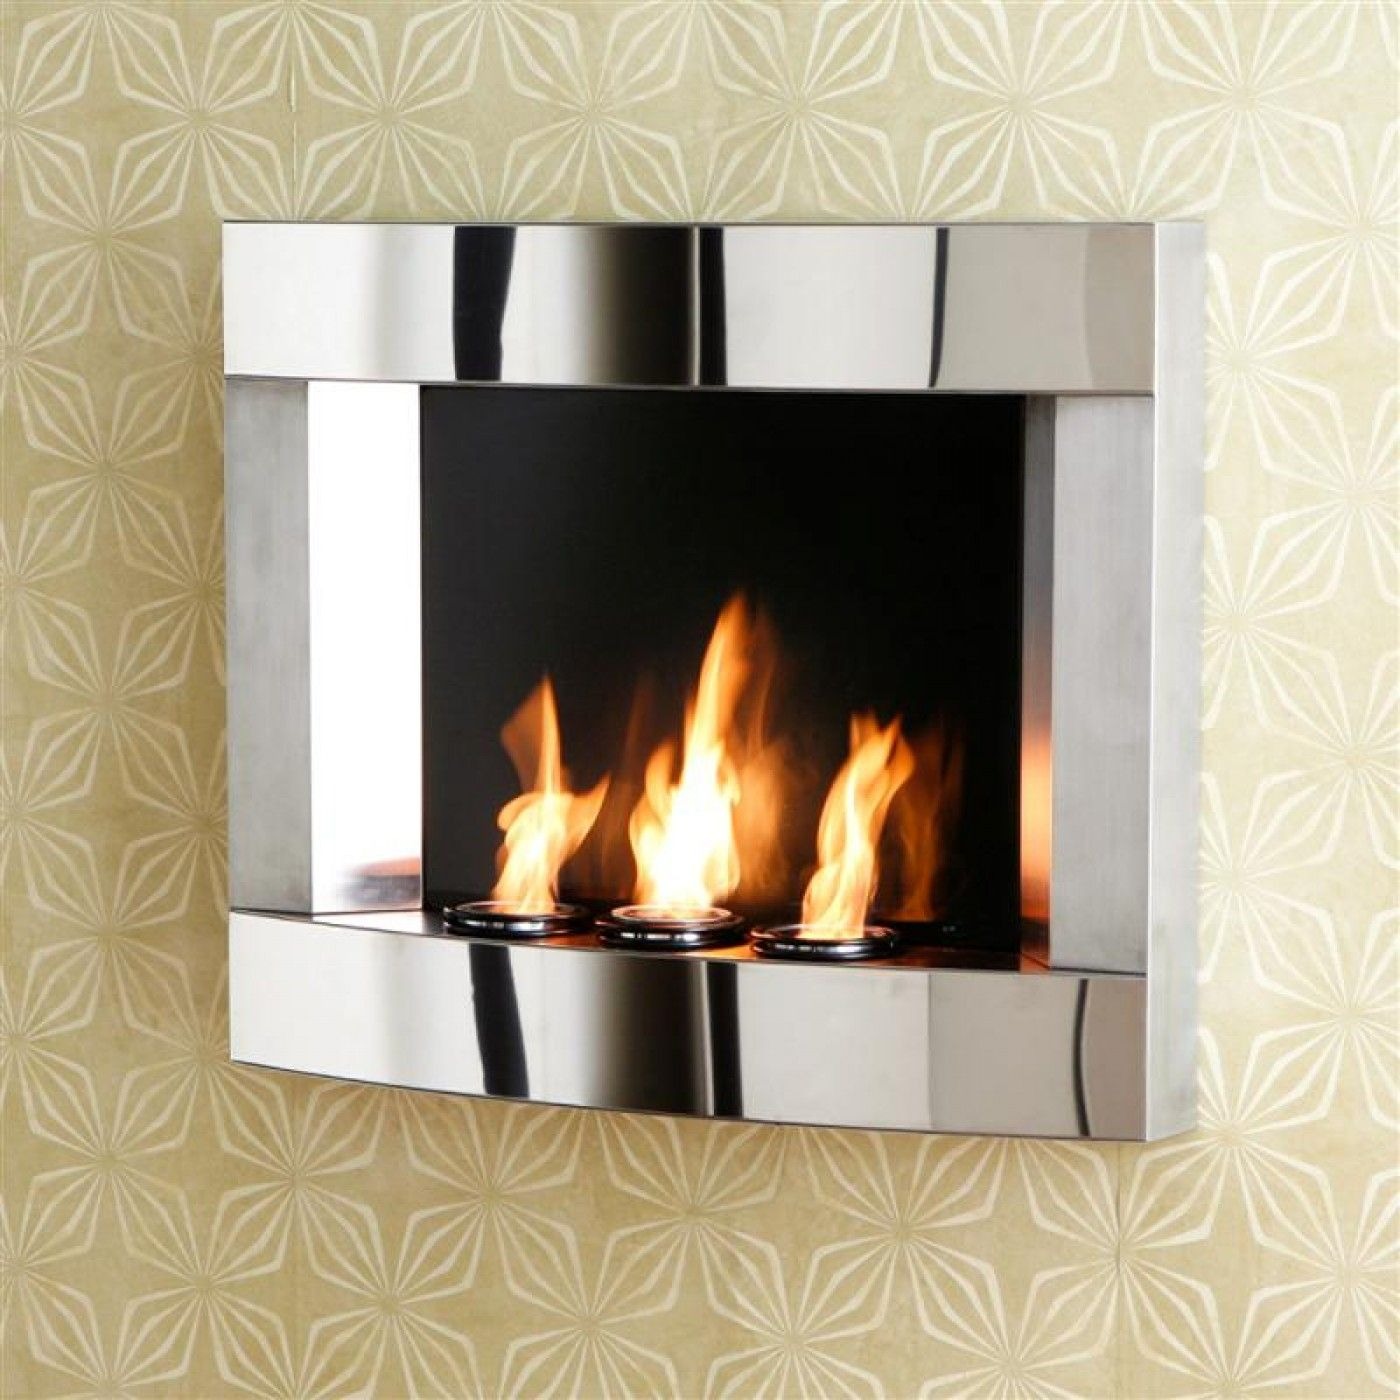 wall mounted fireplace cool for the basement for the home